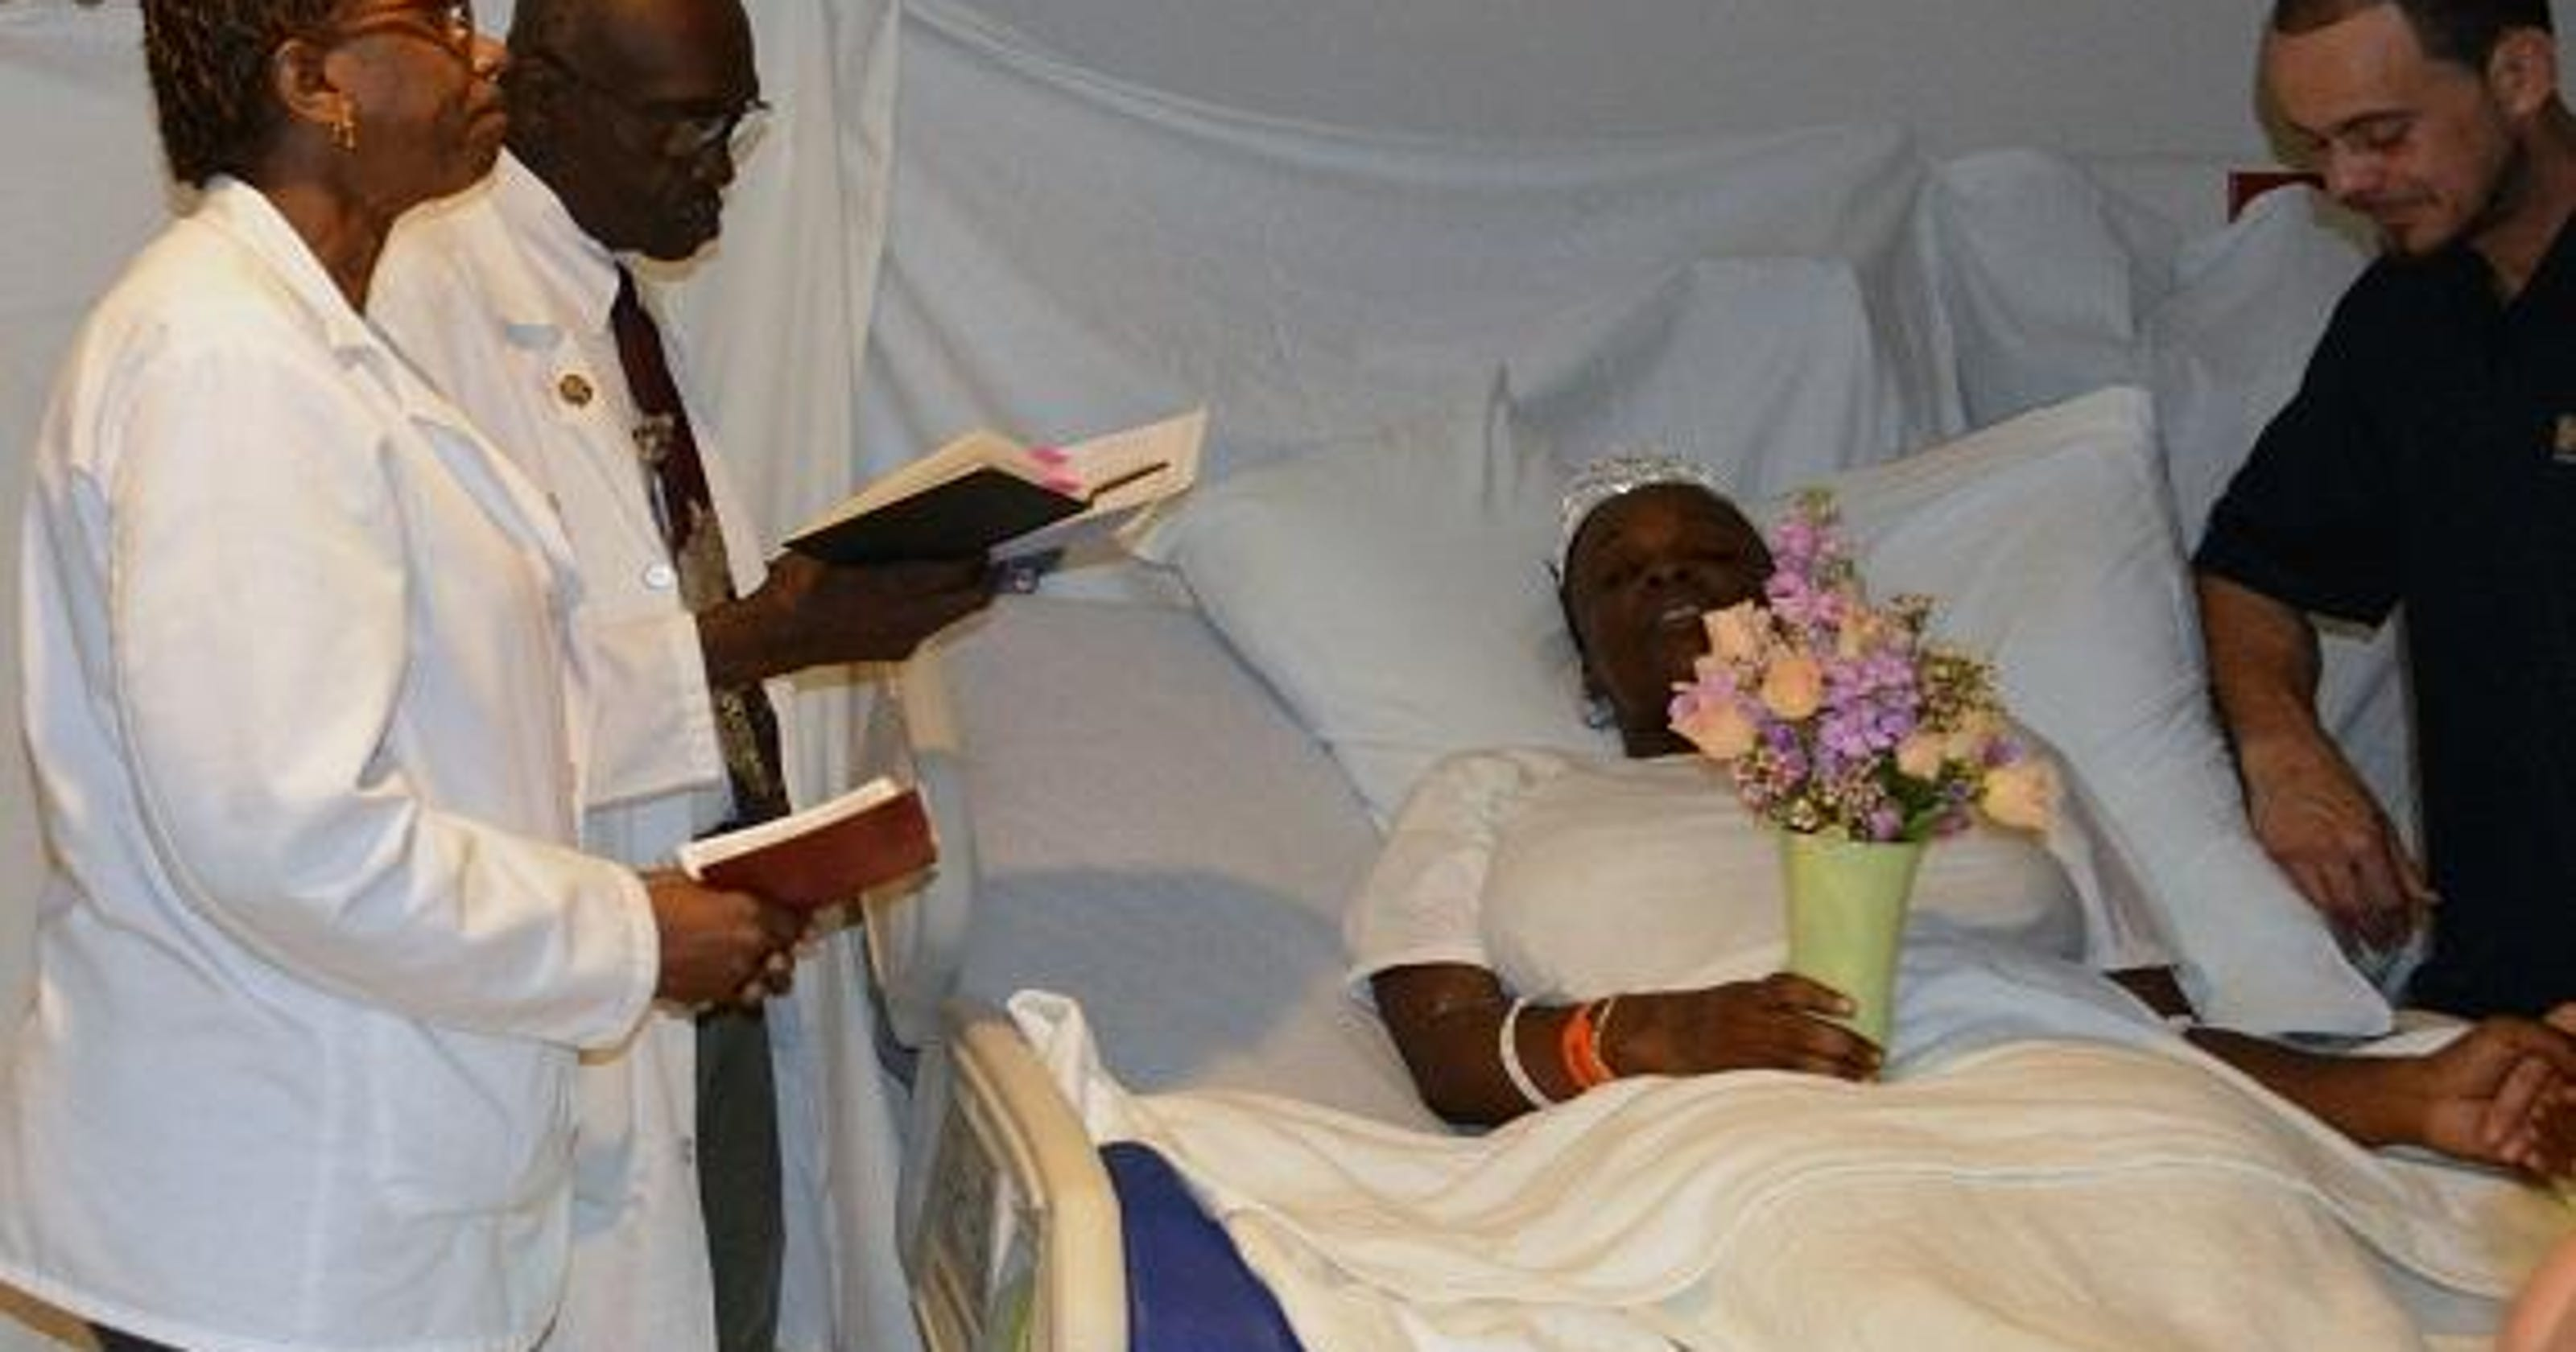 Wedding Reading Love Is Patient: Wedded Bliss For PRMC, Patient